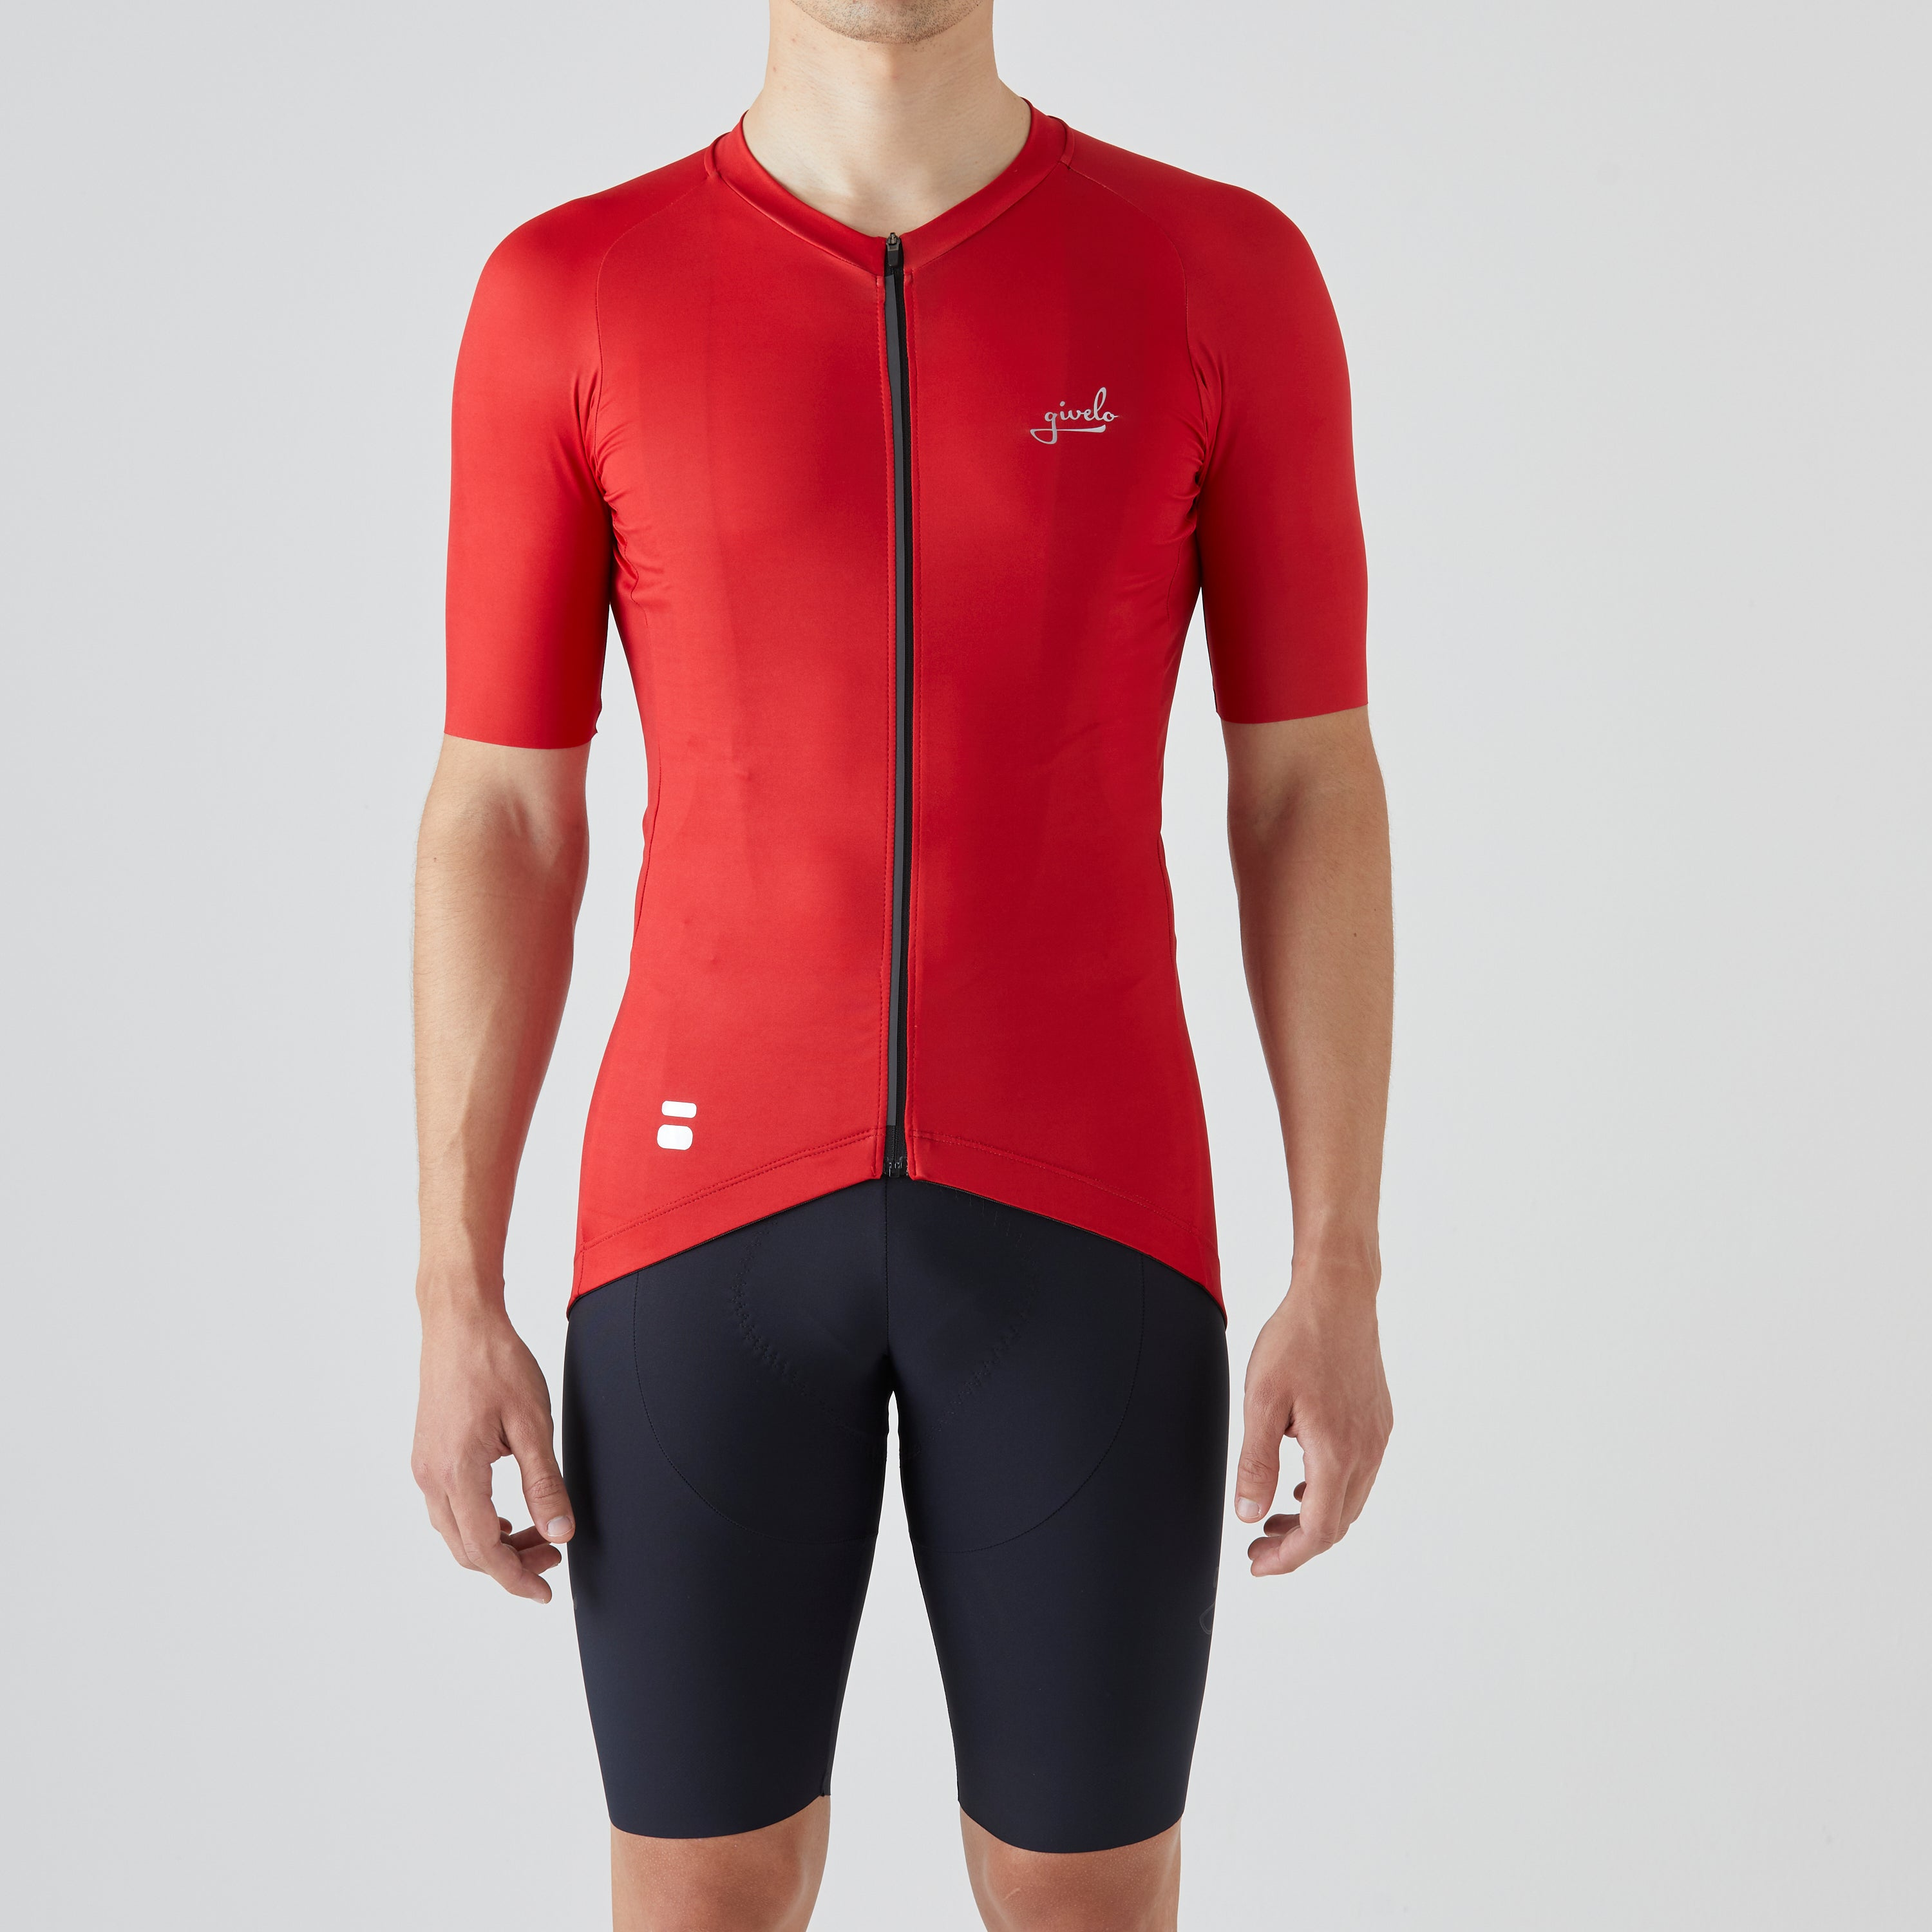 givelo | Essential Jersey - Red